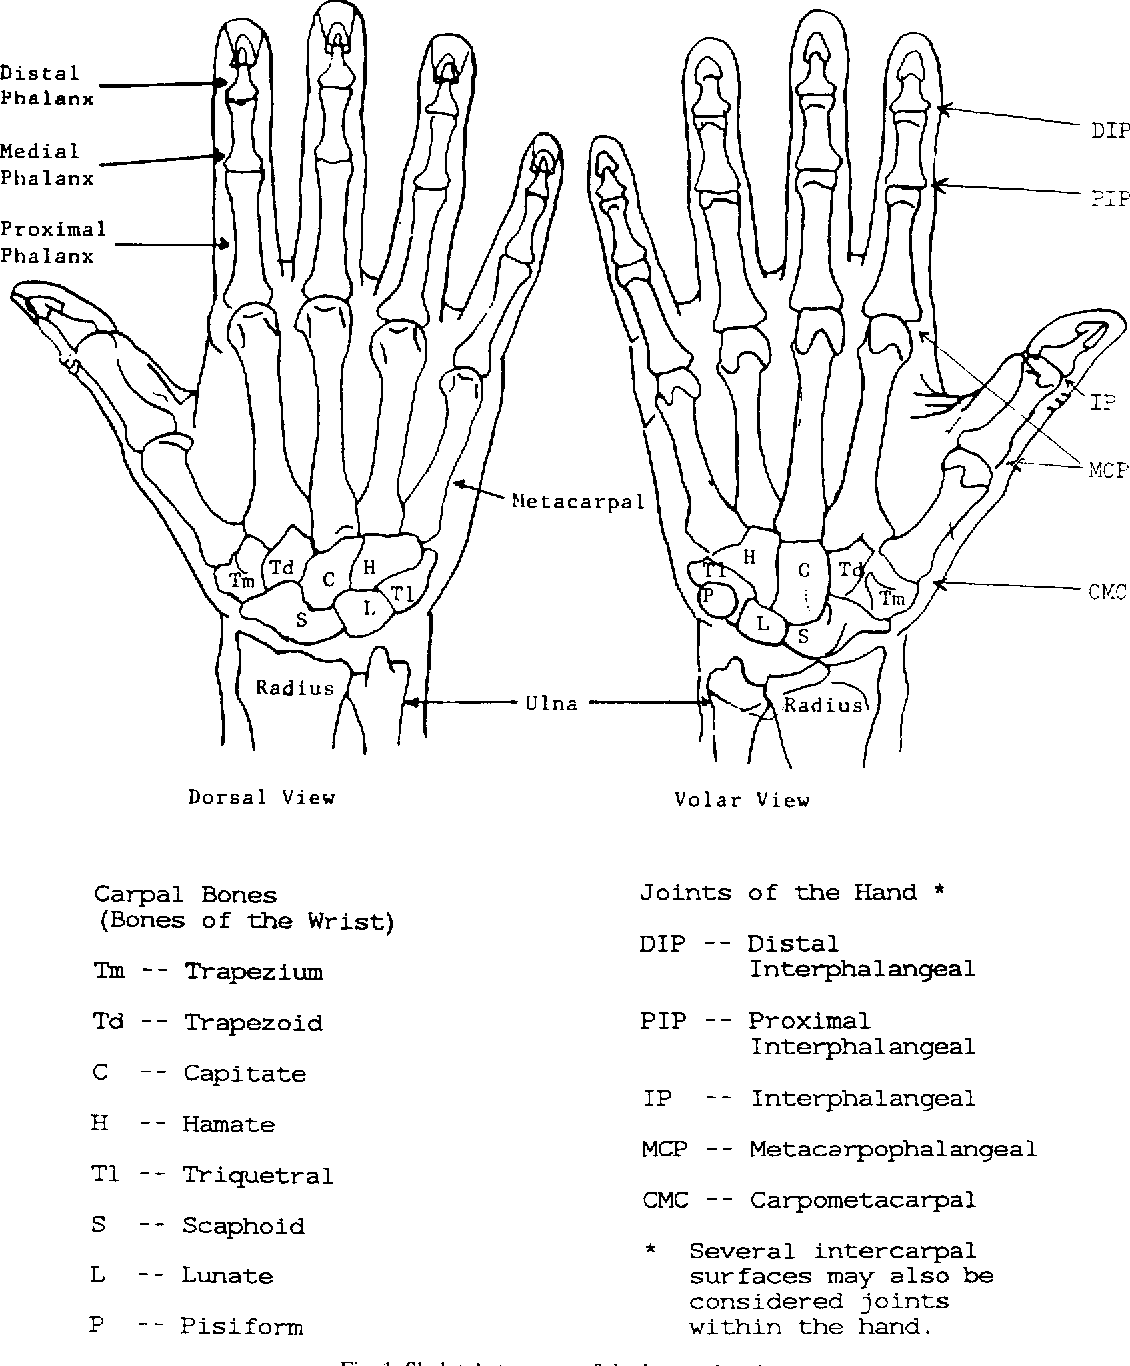 A graphic model of the human hand using CATIA - Semantic Scholar